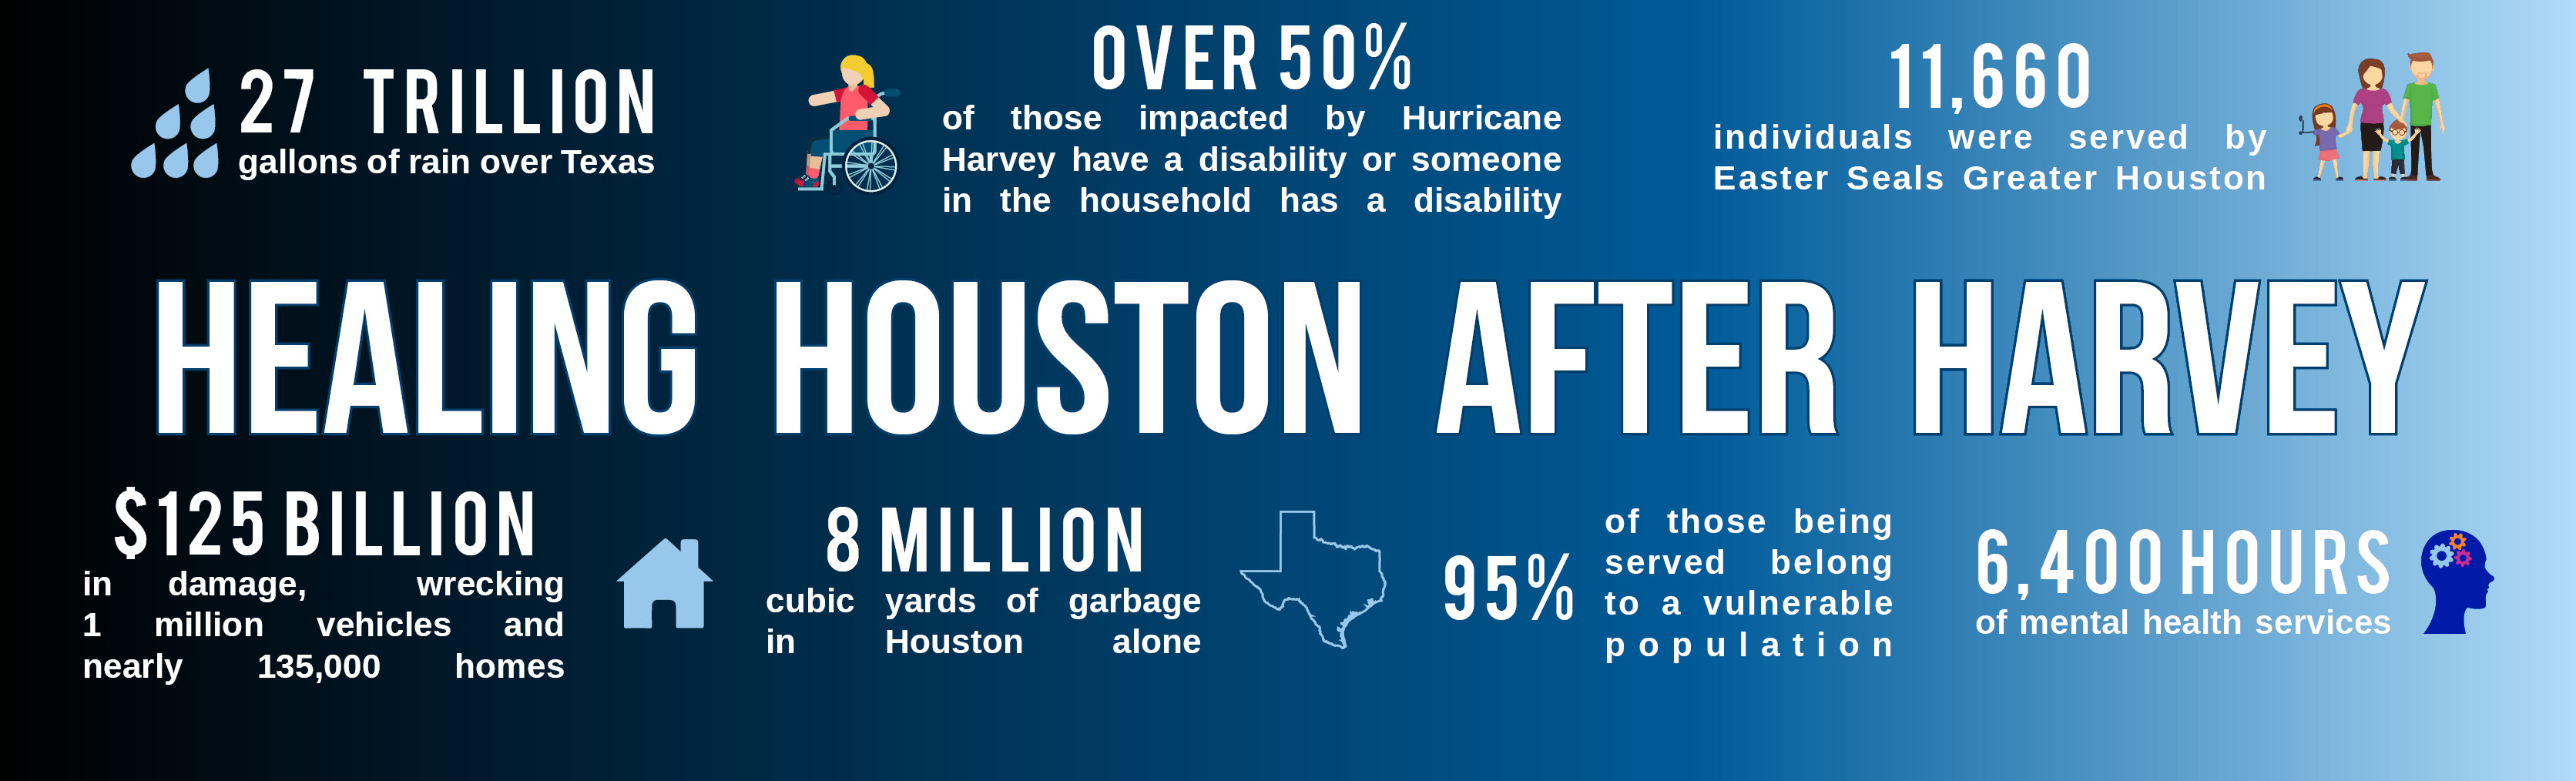 Learn about the immense and ongoing impact Easter Seals Greater Houston has had on our recovering community